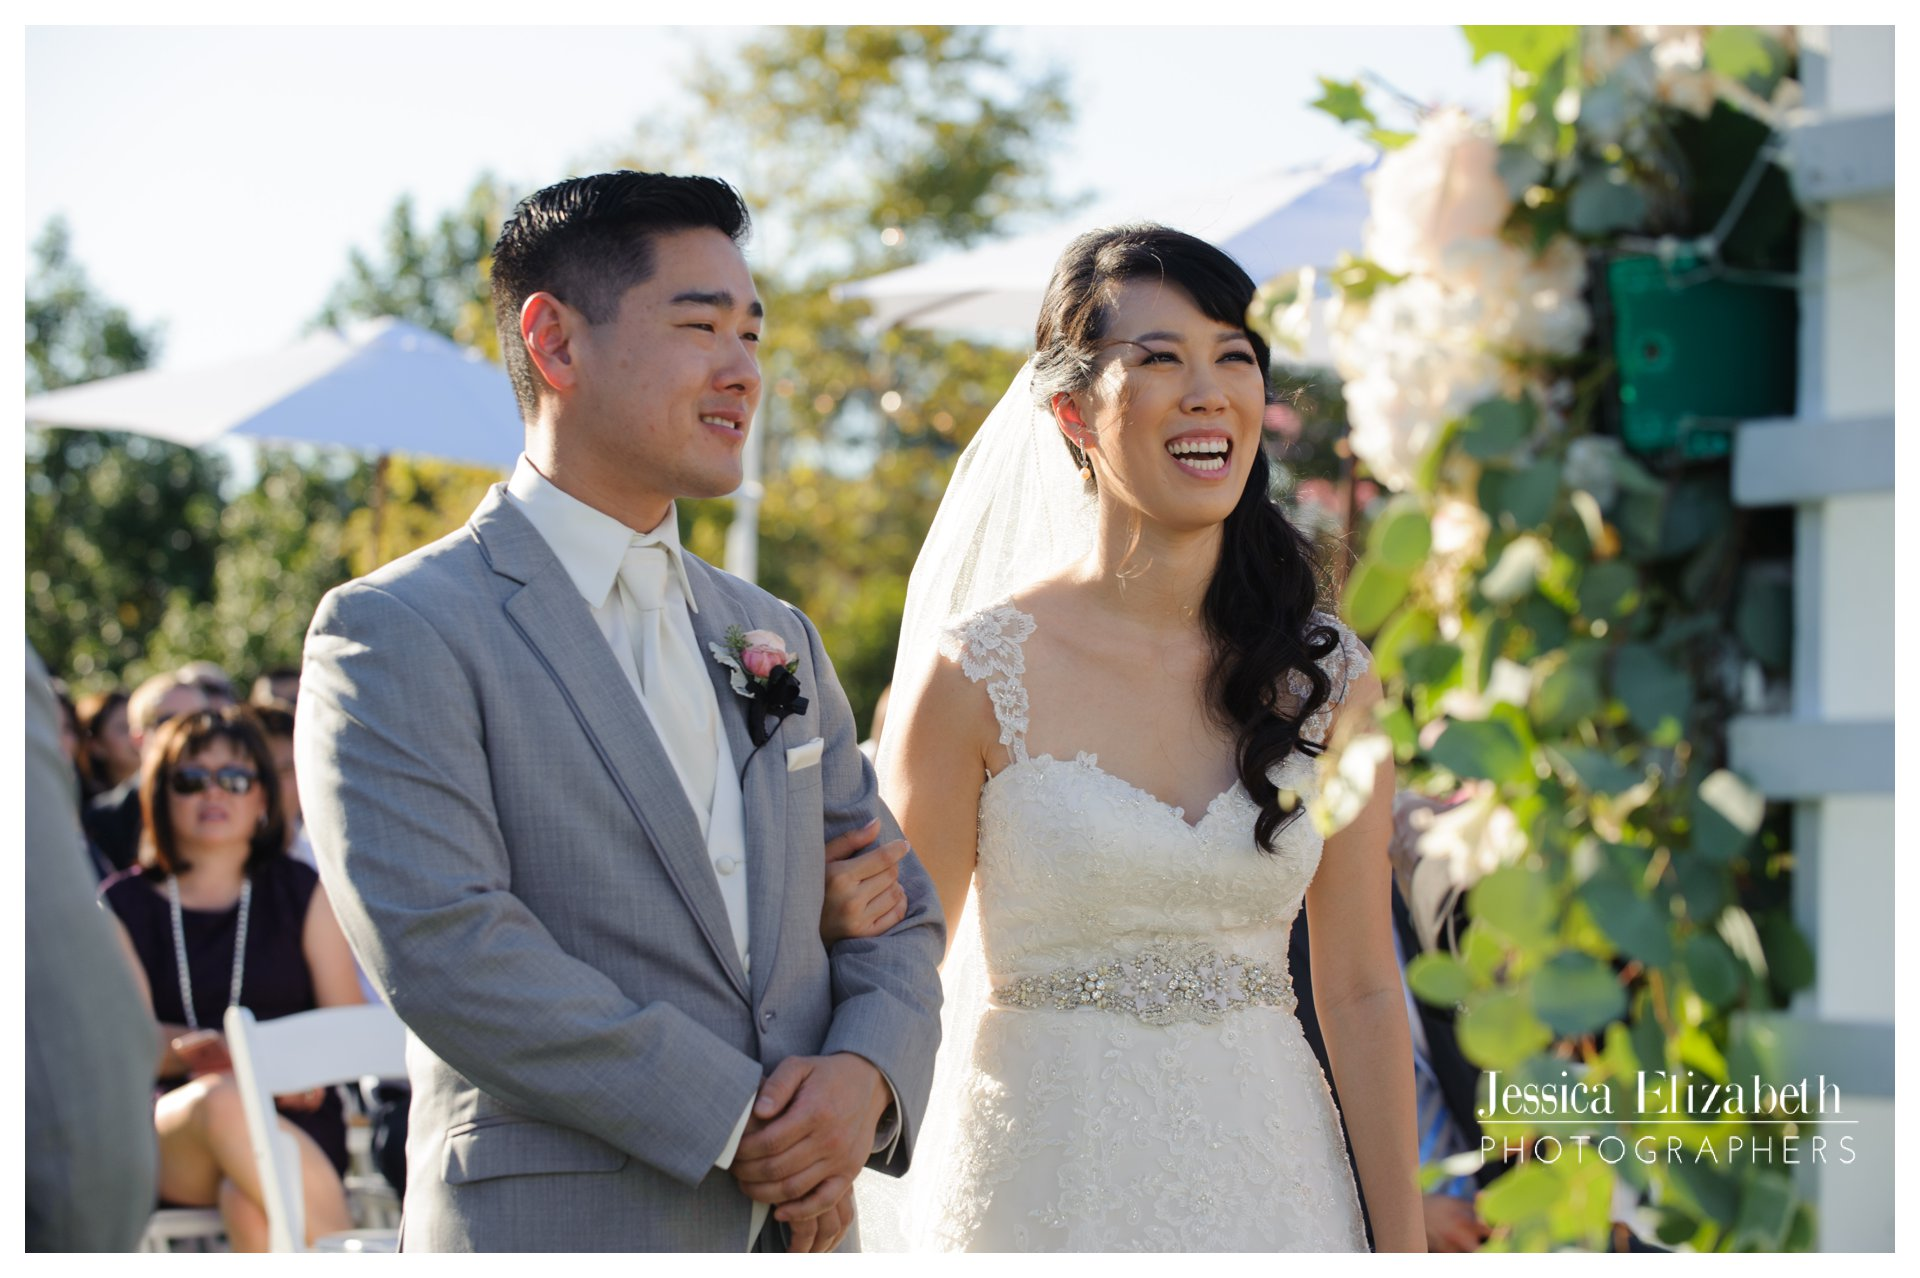 18-South Coast Botanic Garden Palos Verdes Wedding Photography by Jessica Elizabeth